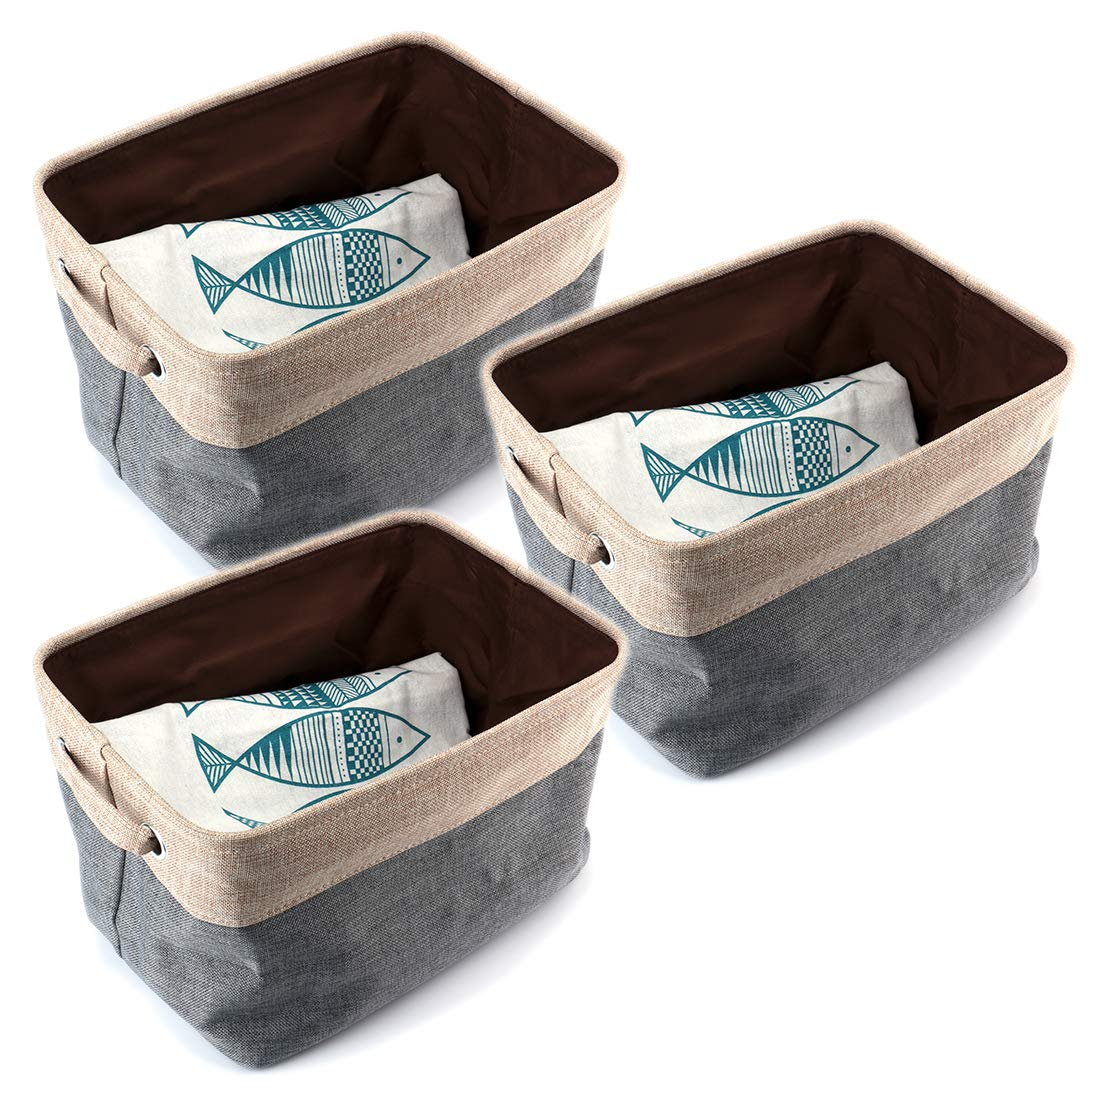 Tosnail 3 Pieces Foldable Storage Bin Basket with Handles - Great for Home, Office, Closet - Gray